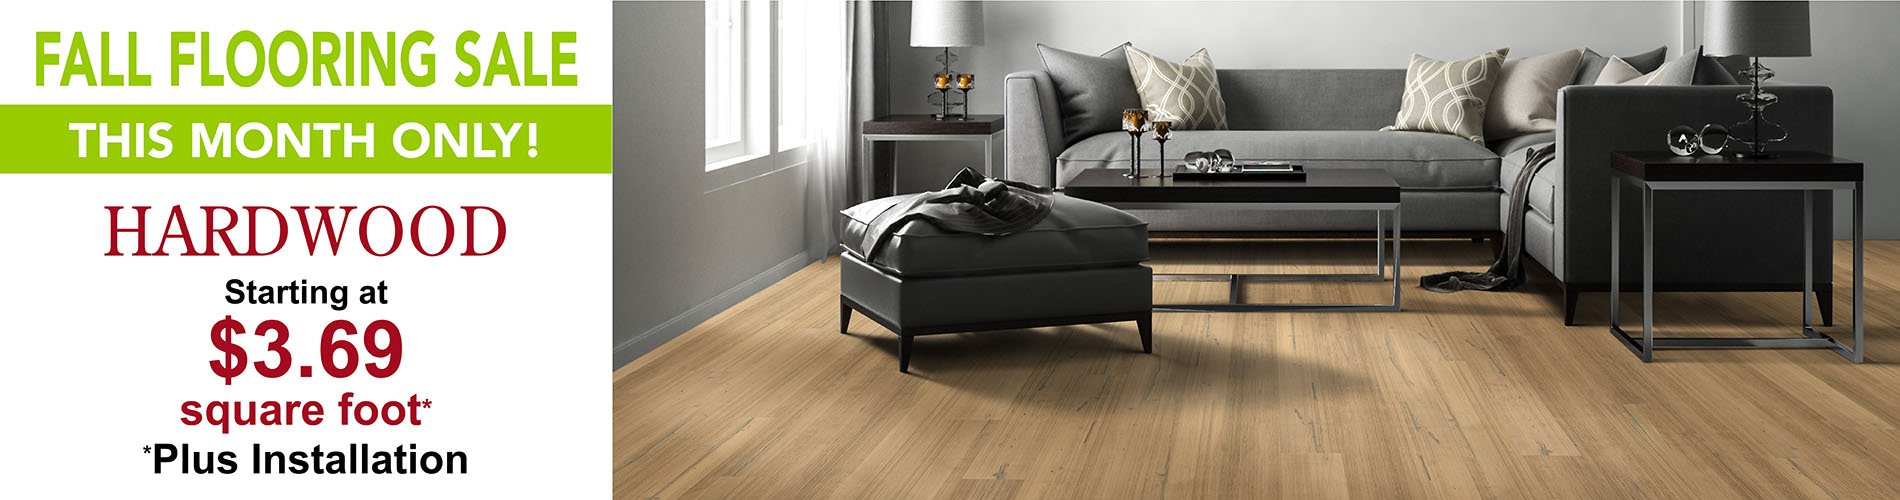 Fall Flooring Sale This Month Only! Hardwood starting at $3.69 sq.ft. (plus installation). Only at Floors To Go of Indianapolis